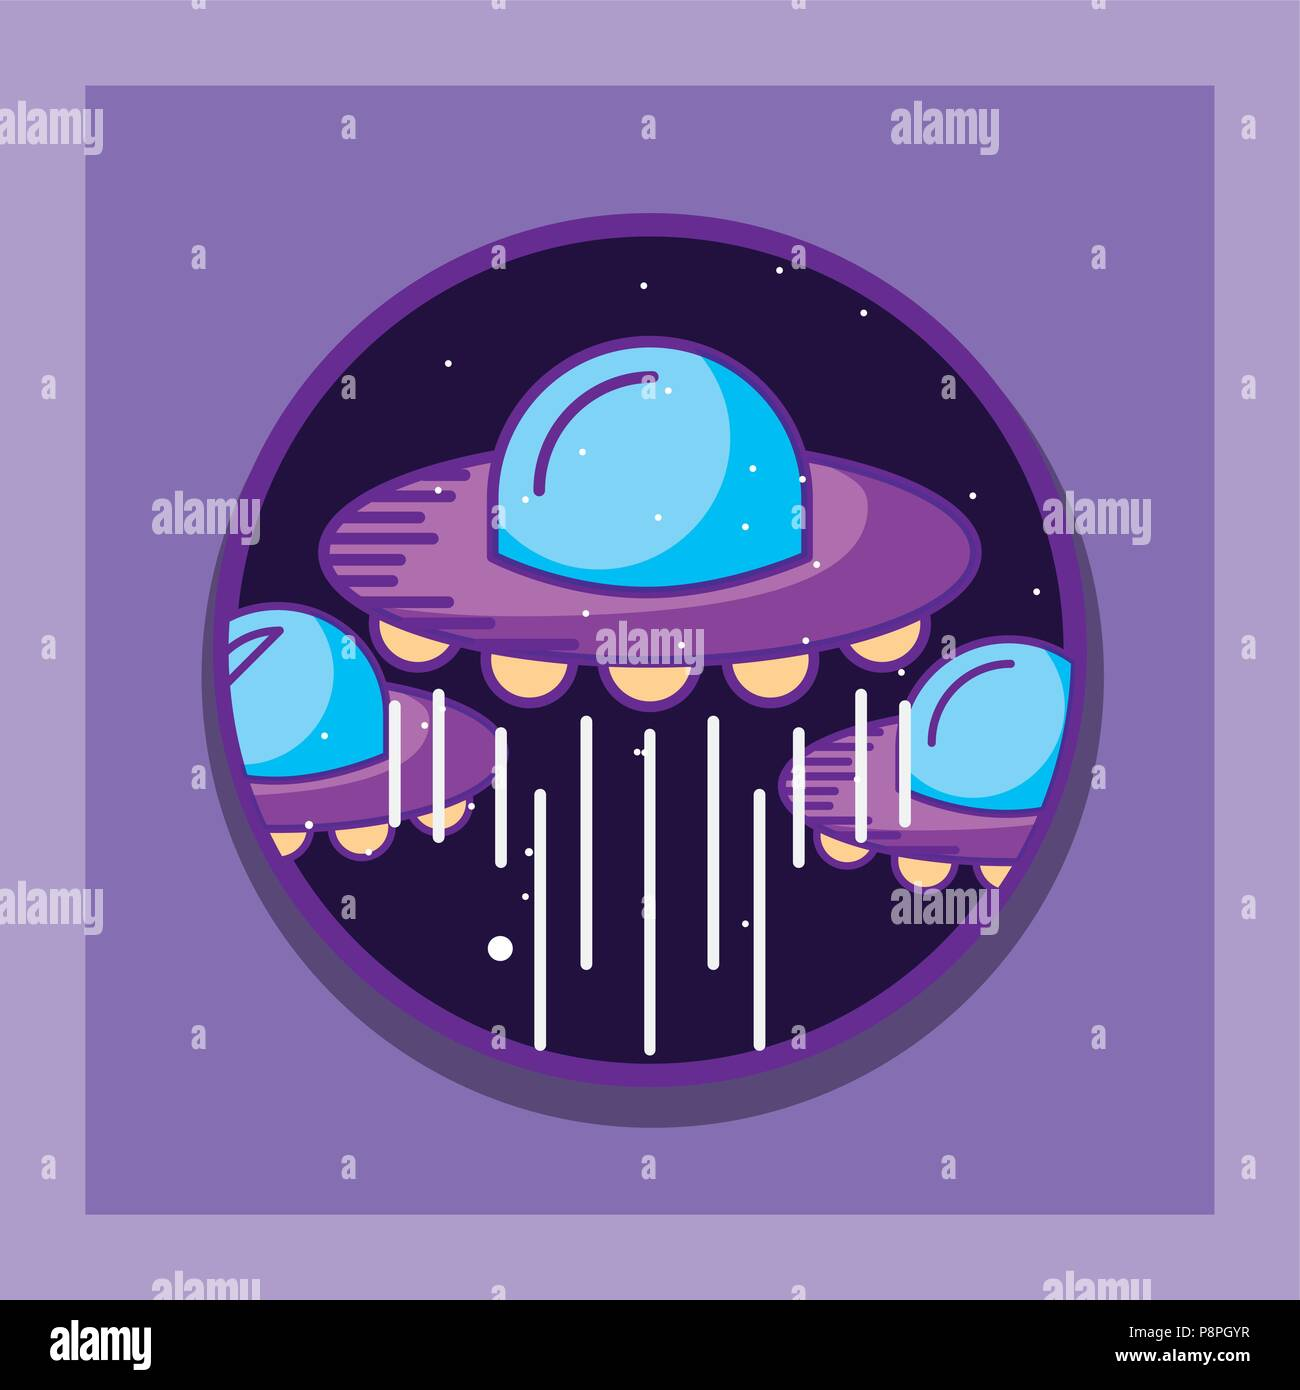 space galaxy cosmic card ufos explore planets vector illustration - Stock Image